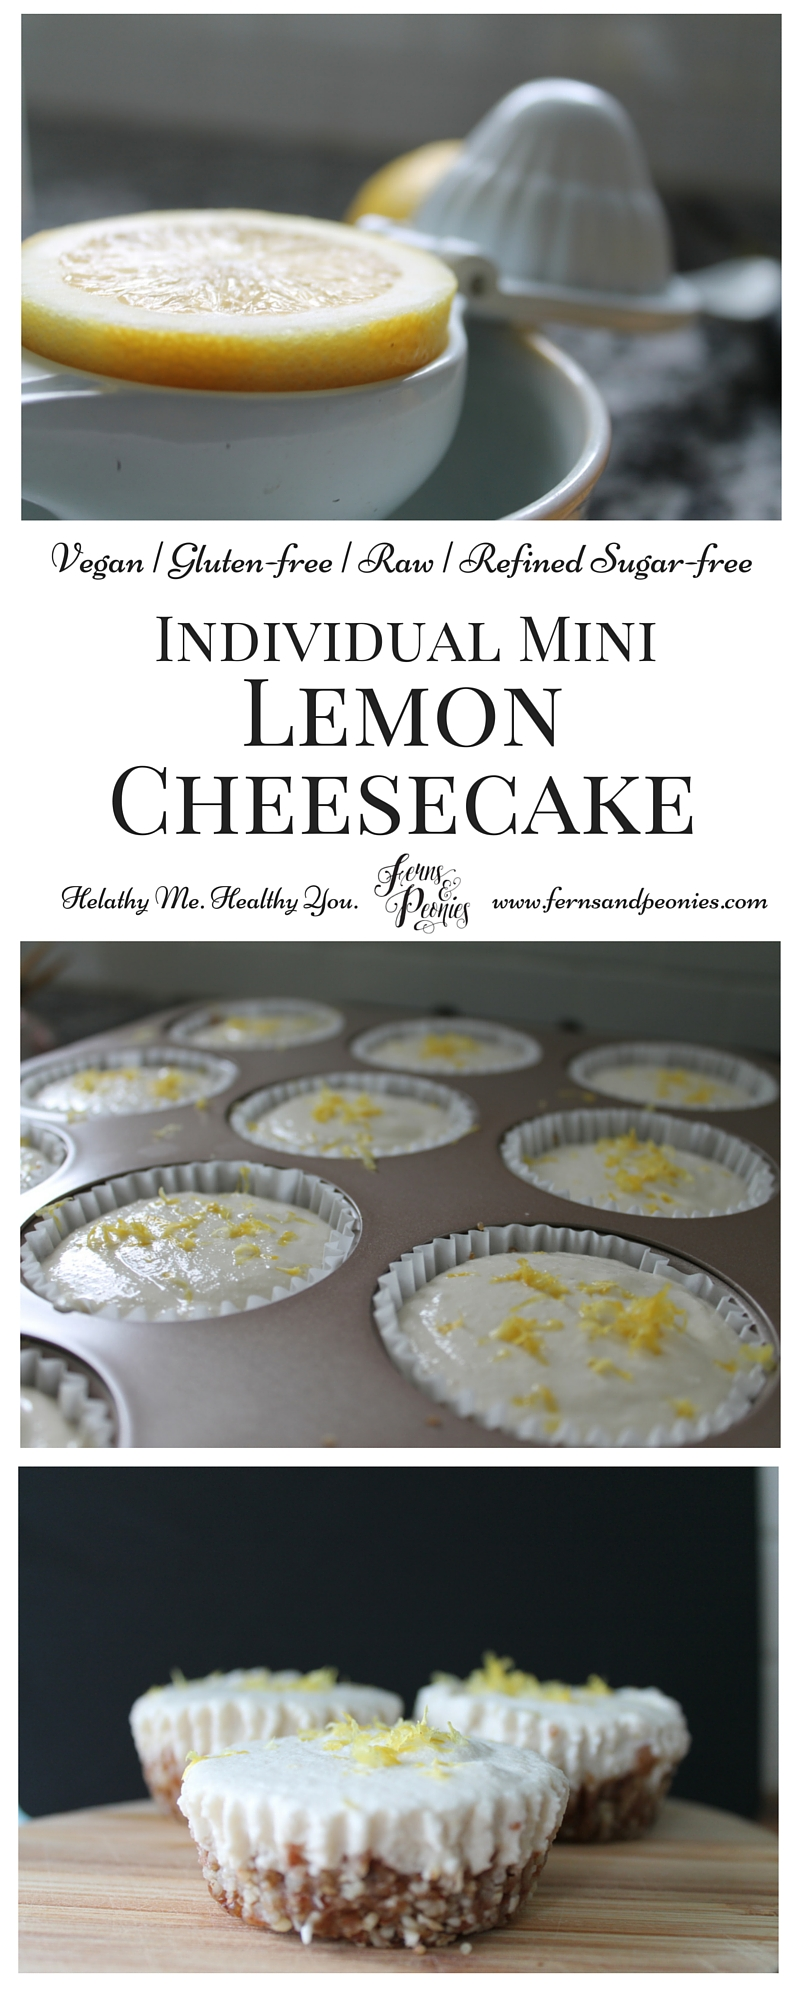 Vegan. Gluten-free. Raw. Refined Sugar-free. All that and easy to make. These Individual Mini Lemon Cheesecakes are cool and refreshingly delicious! Find the recipe on the blog at www.fernsandpeonies.com